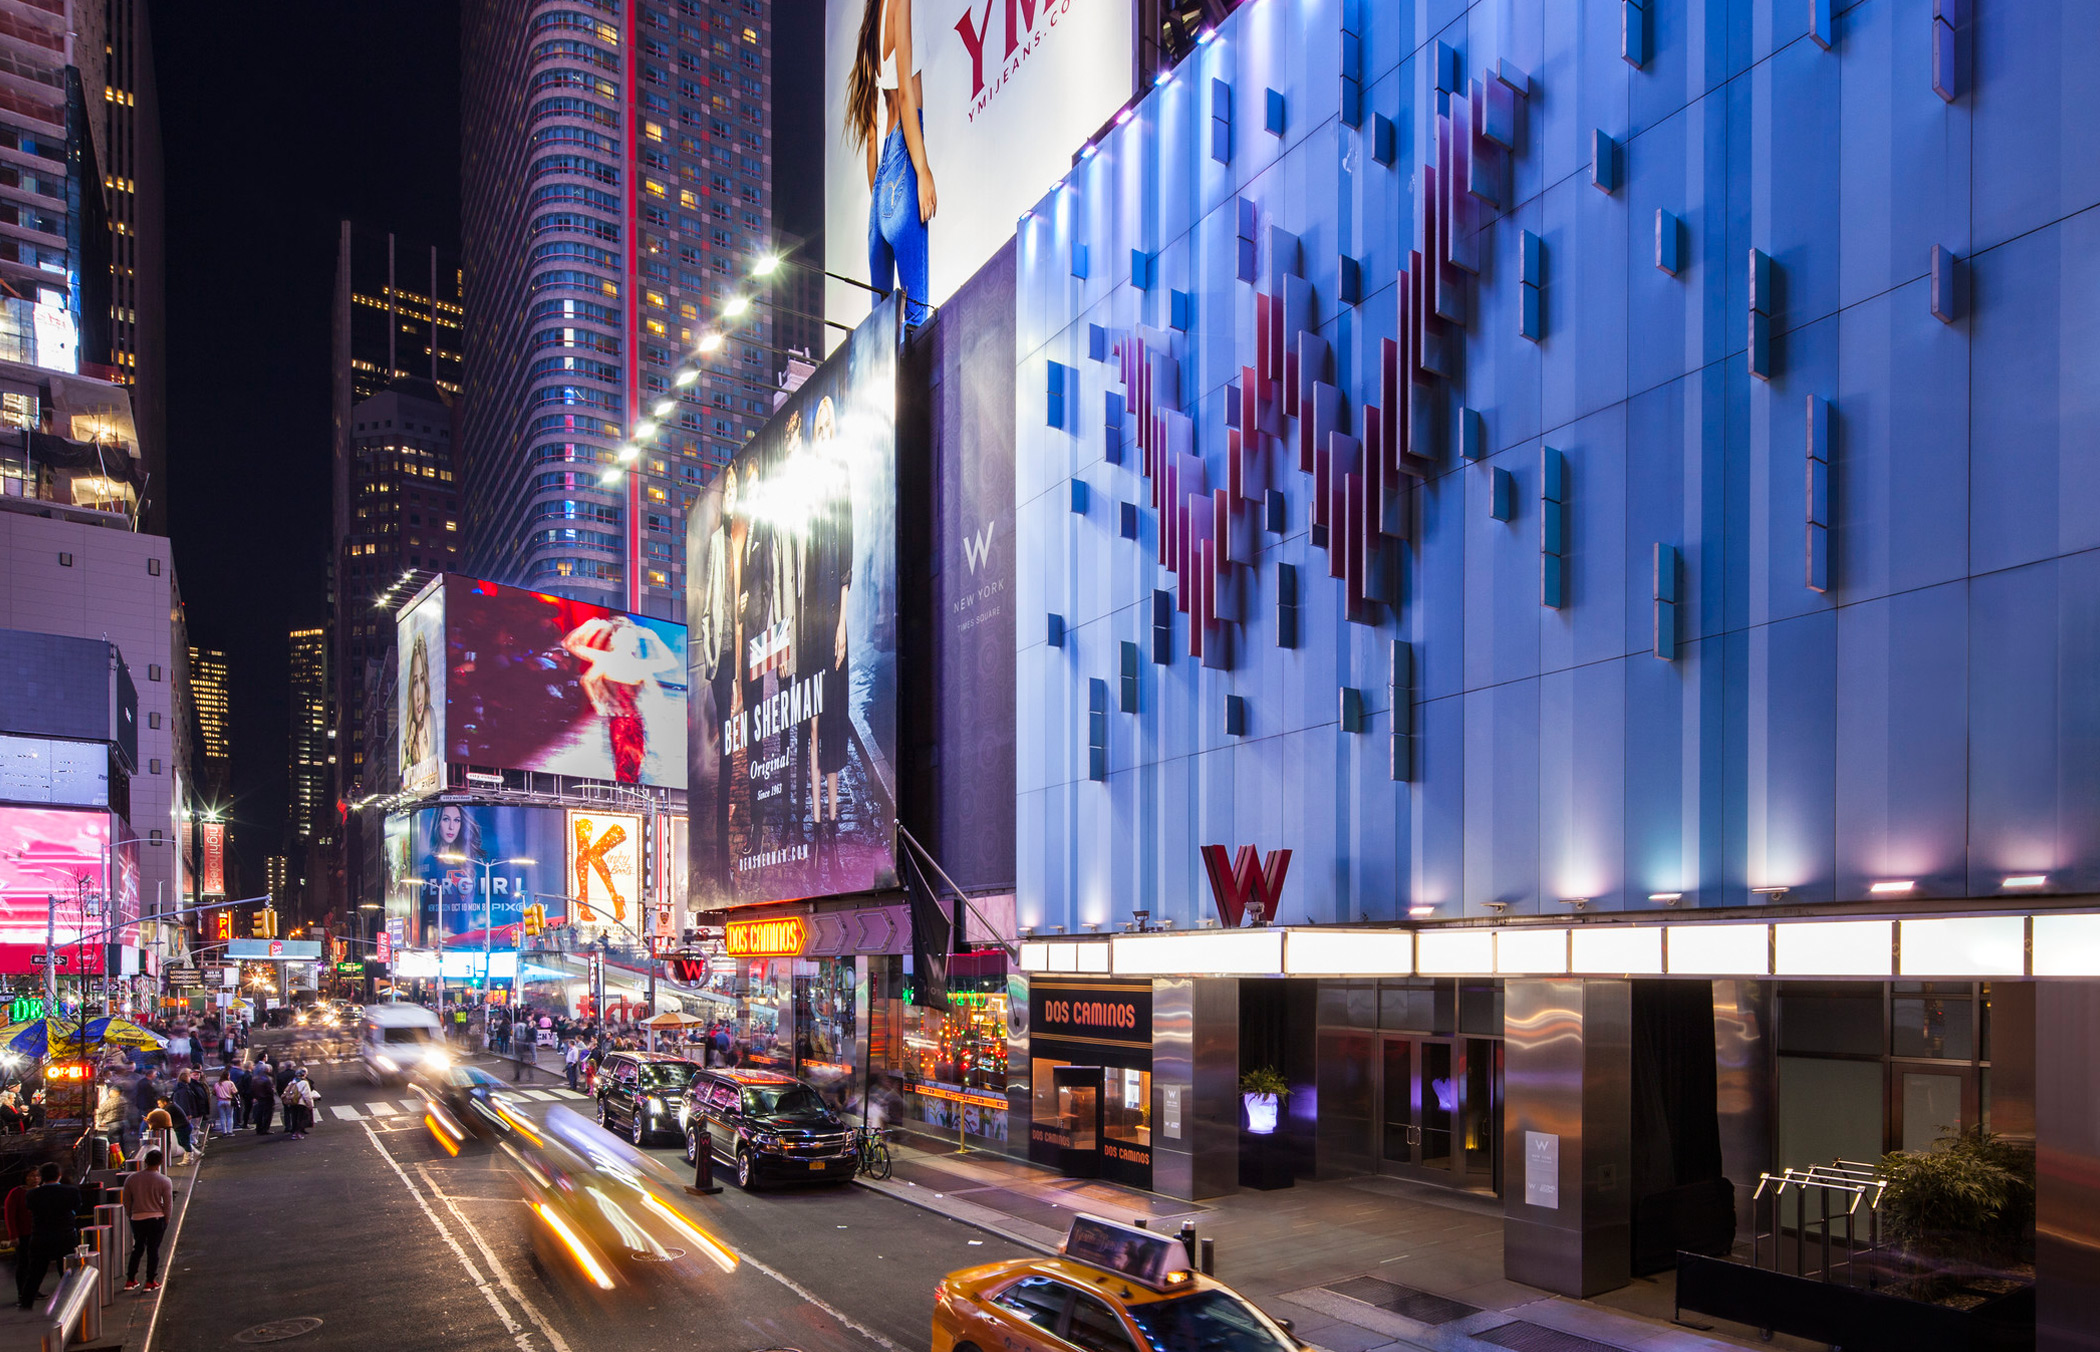 w-new-york-times-square-location-exterior